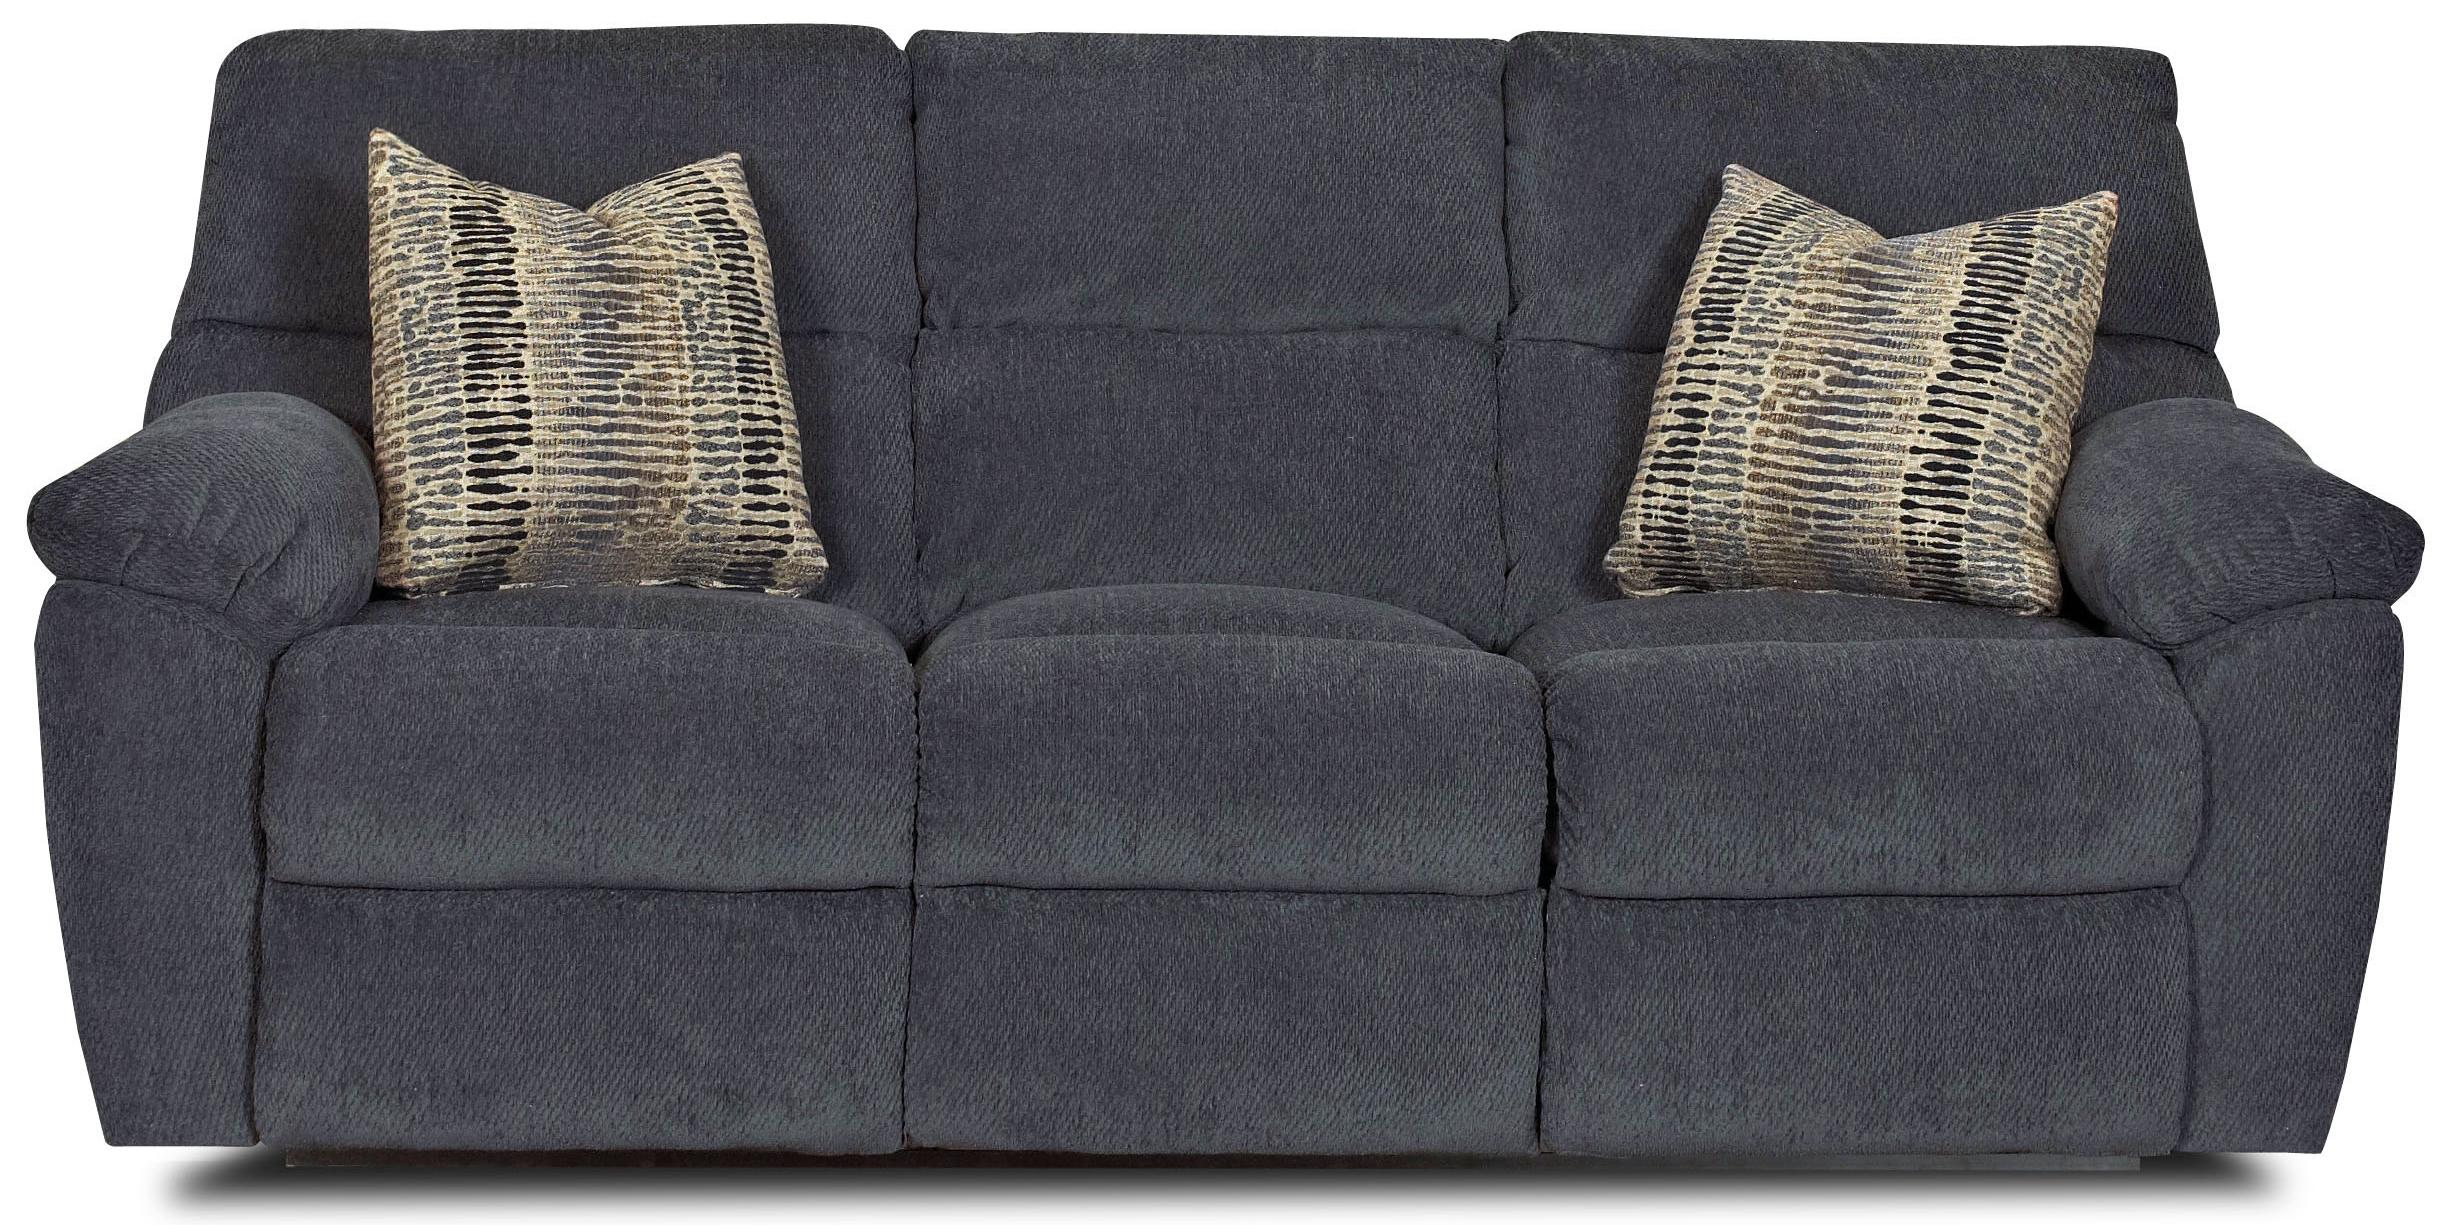 Klaussner Odessa Power Reclining Sofa - Item Number: 14503P PWRS